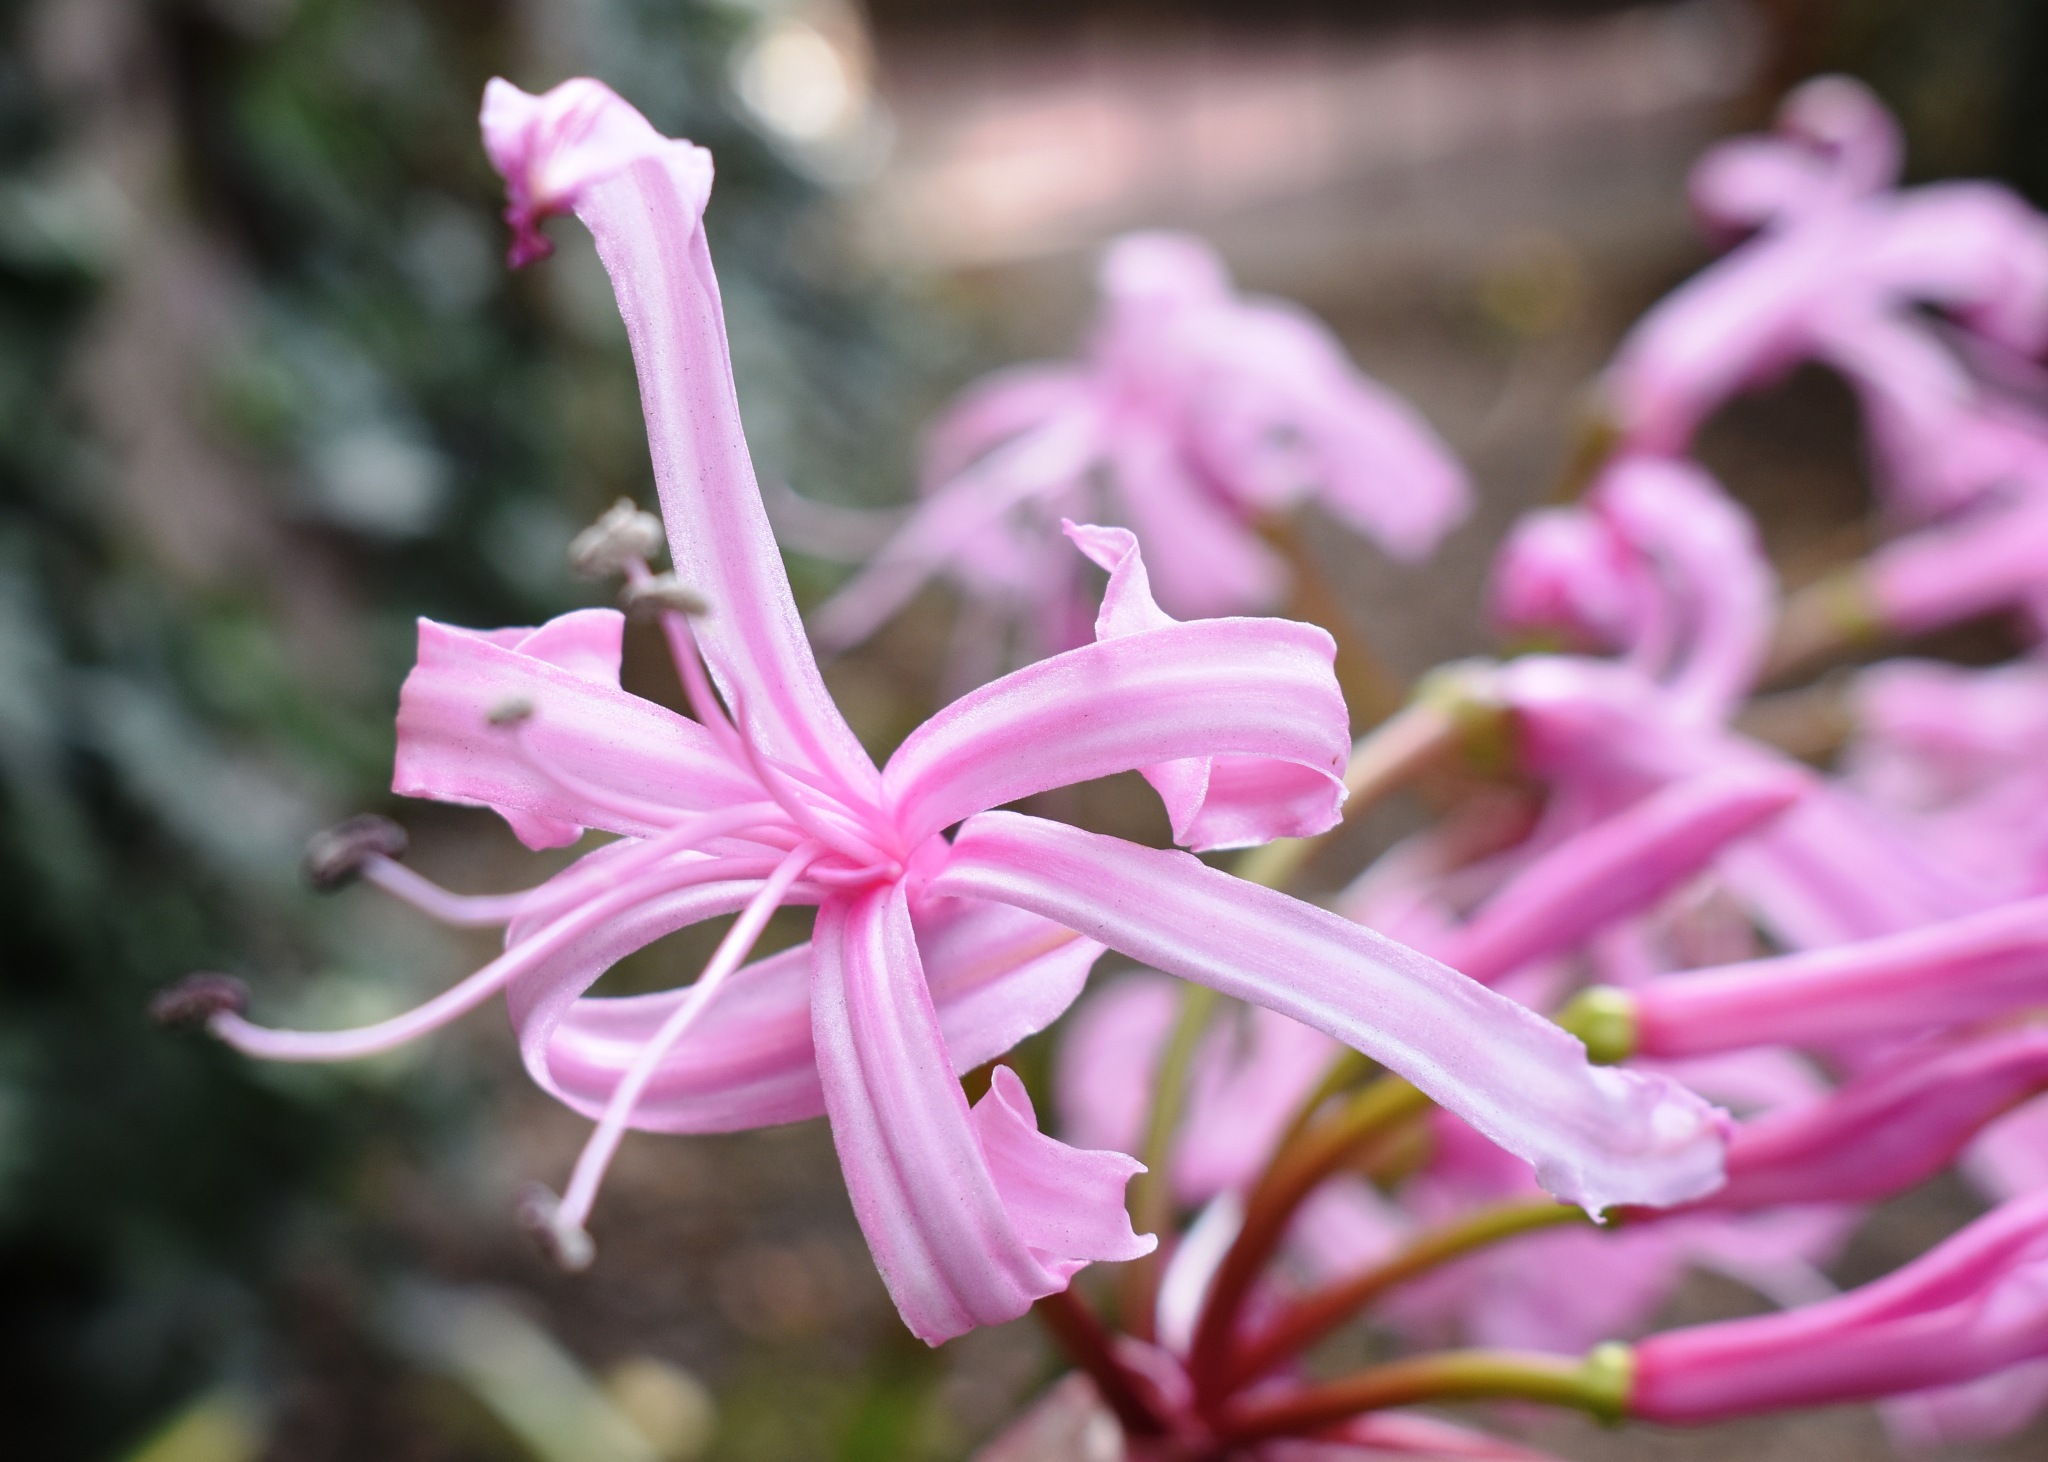 A pink agapanthus by Stephen Ashdown